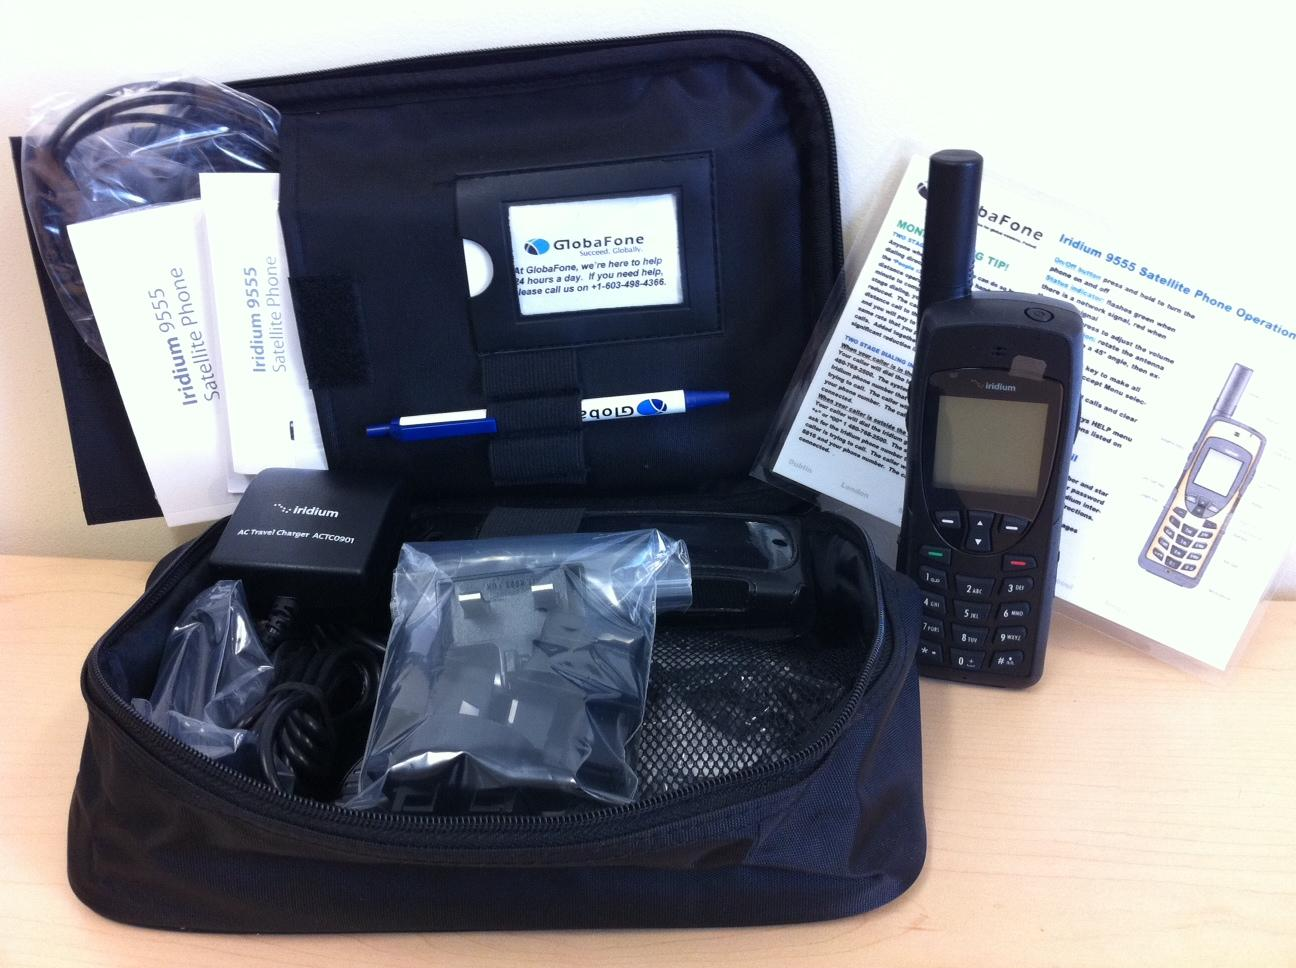 satellite phone 9555 kit